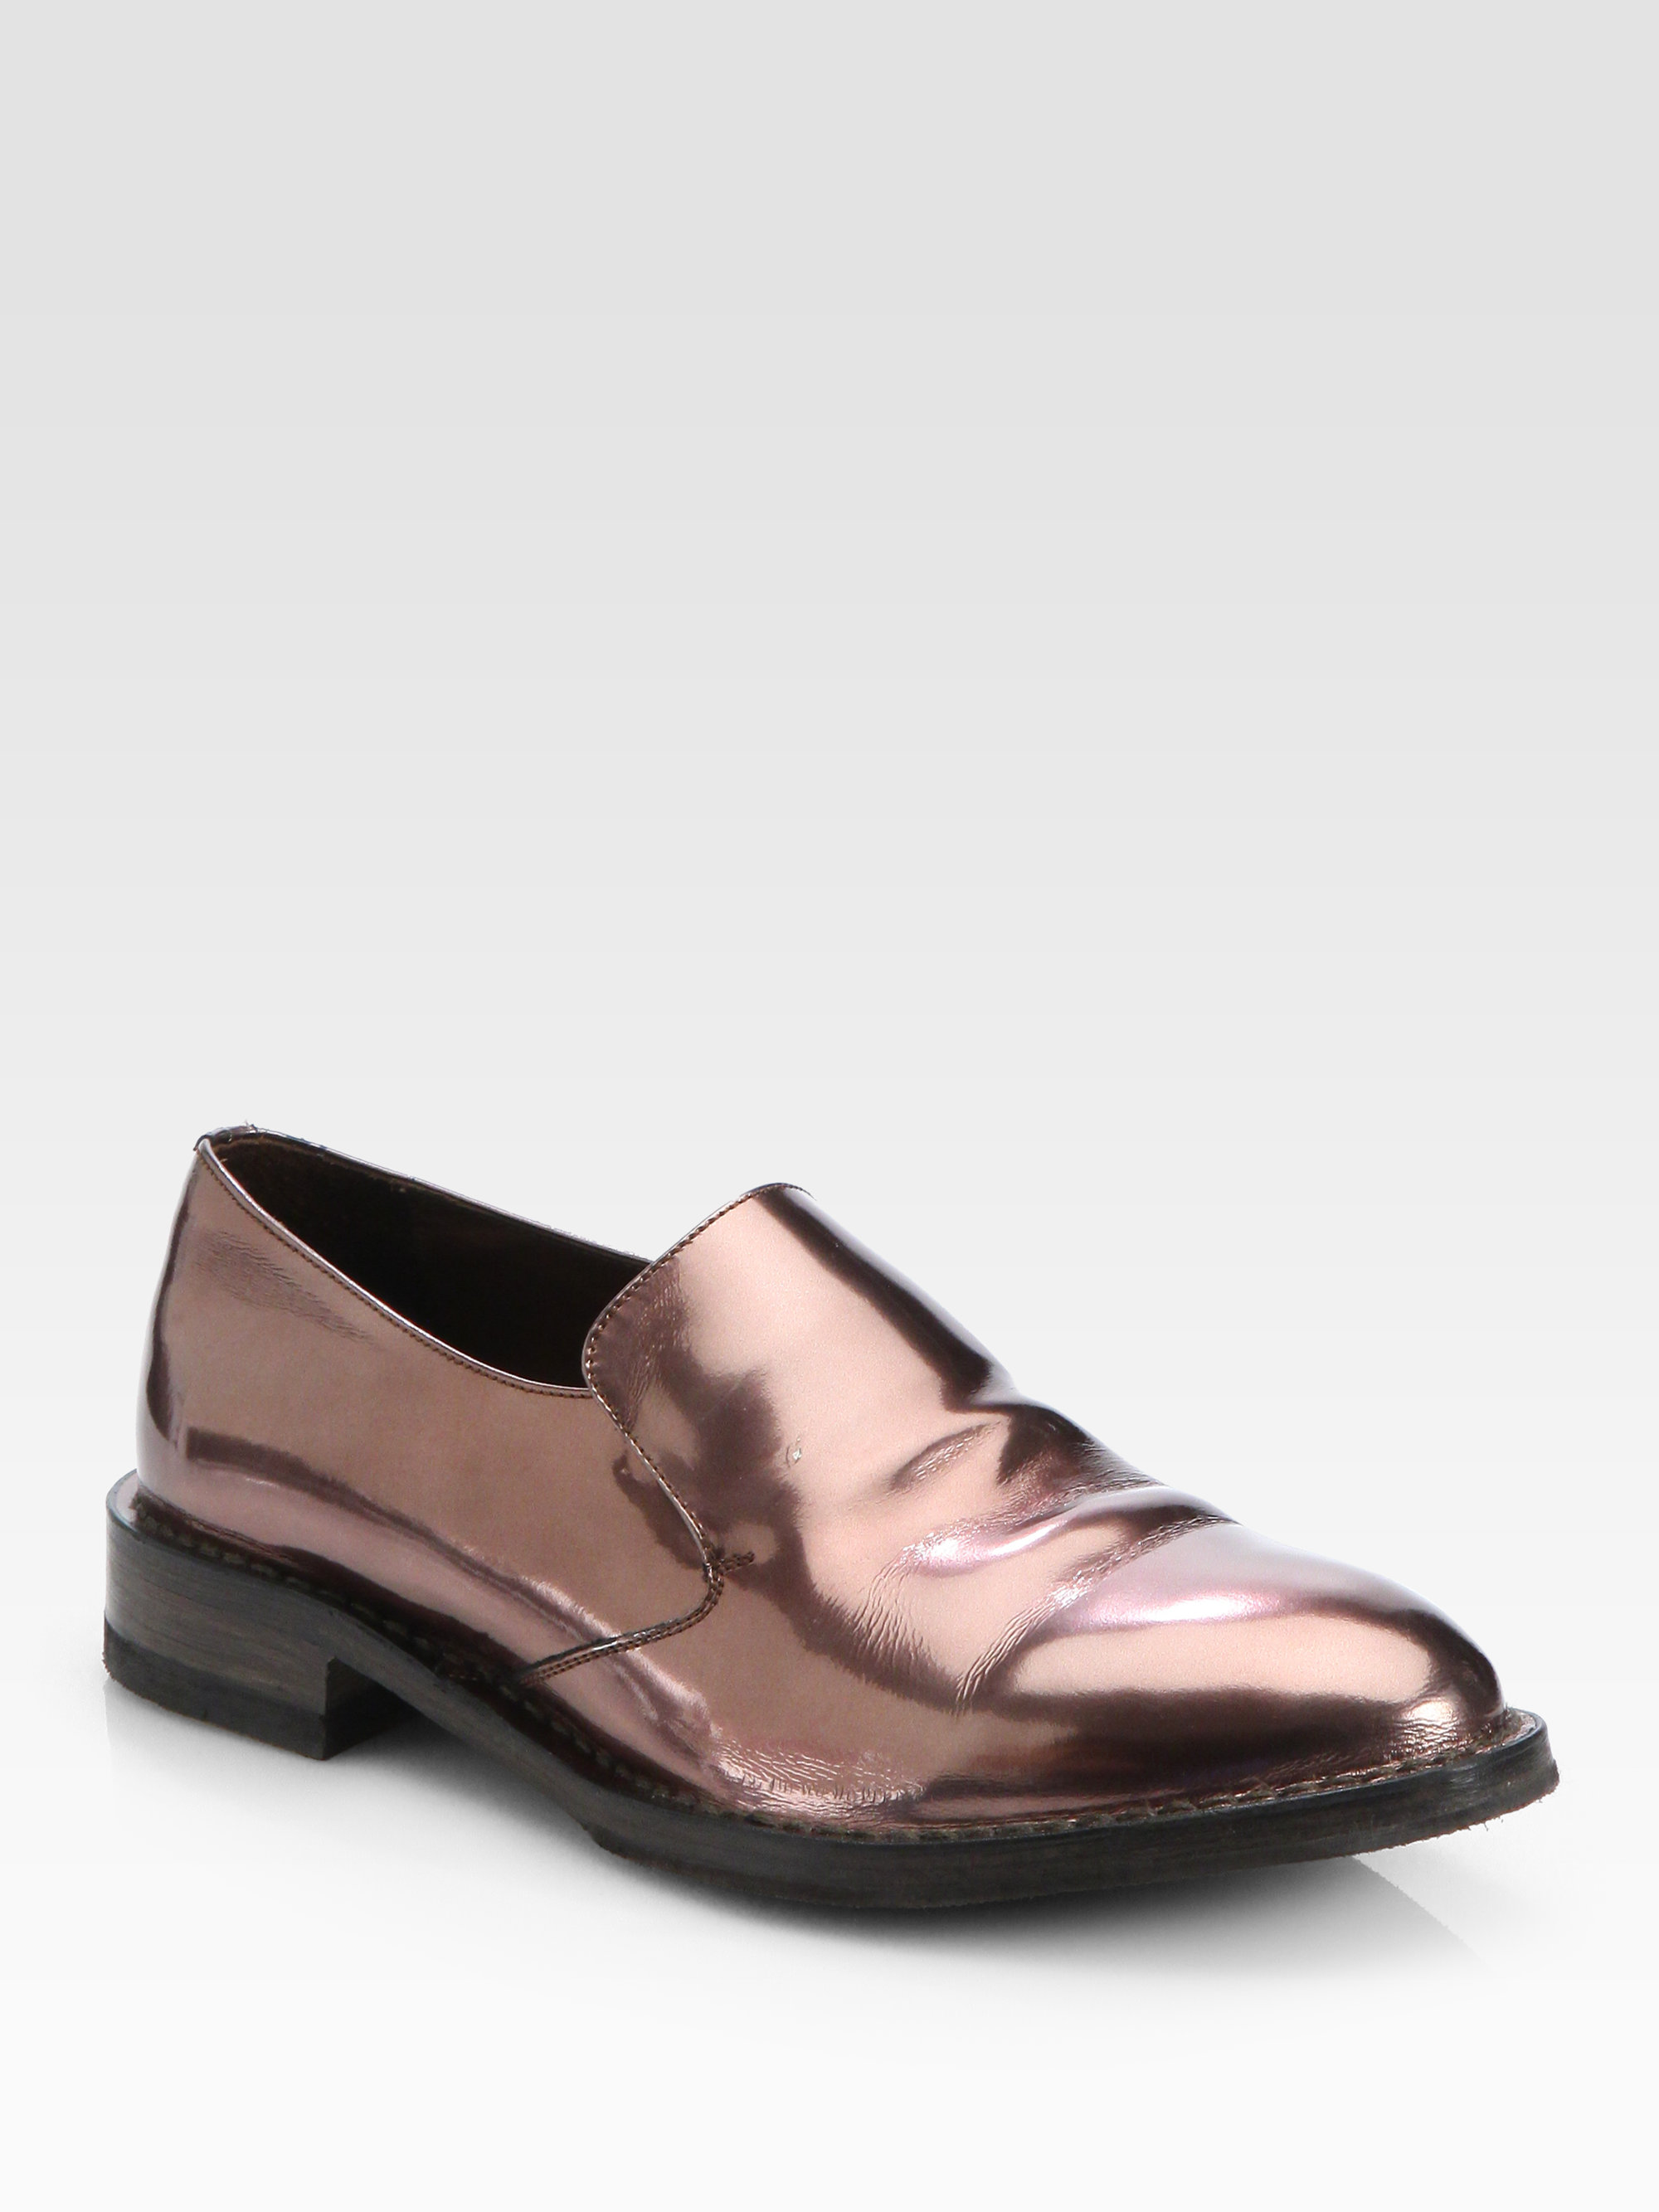 Brunello Cucinelli Metallic Leather Loafers perfect gTmCi